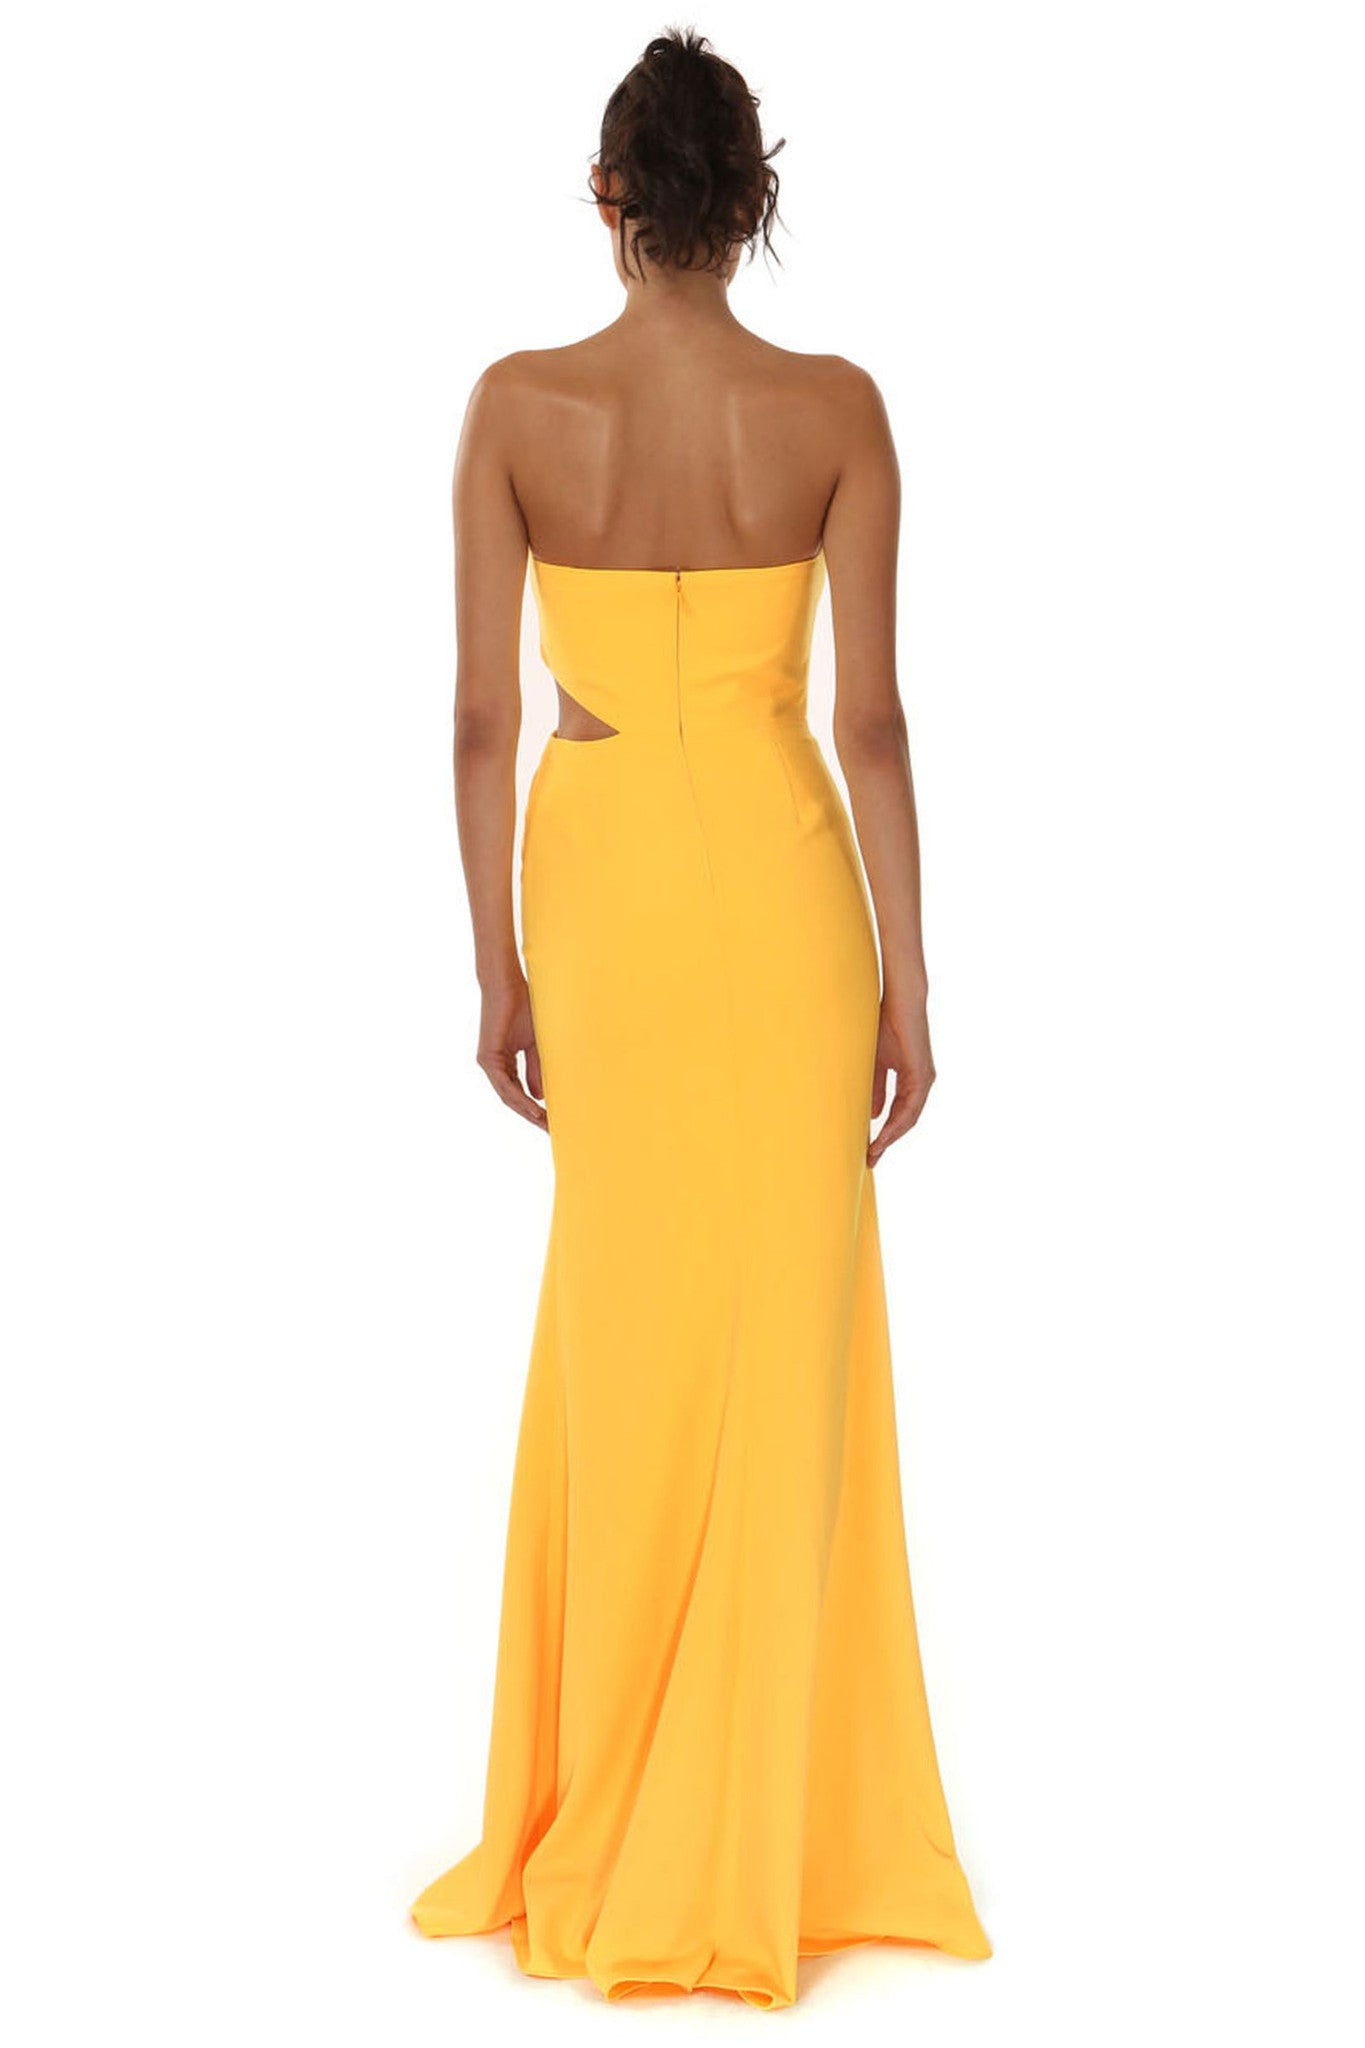 Jay Godfrey Sunflower Strapless Cut-Out Gown - Back View